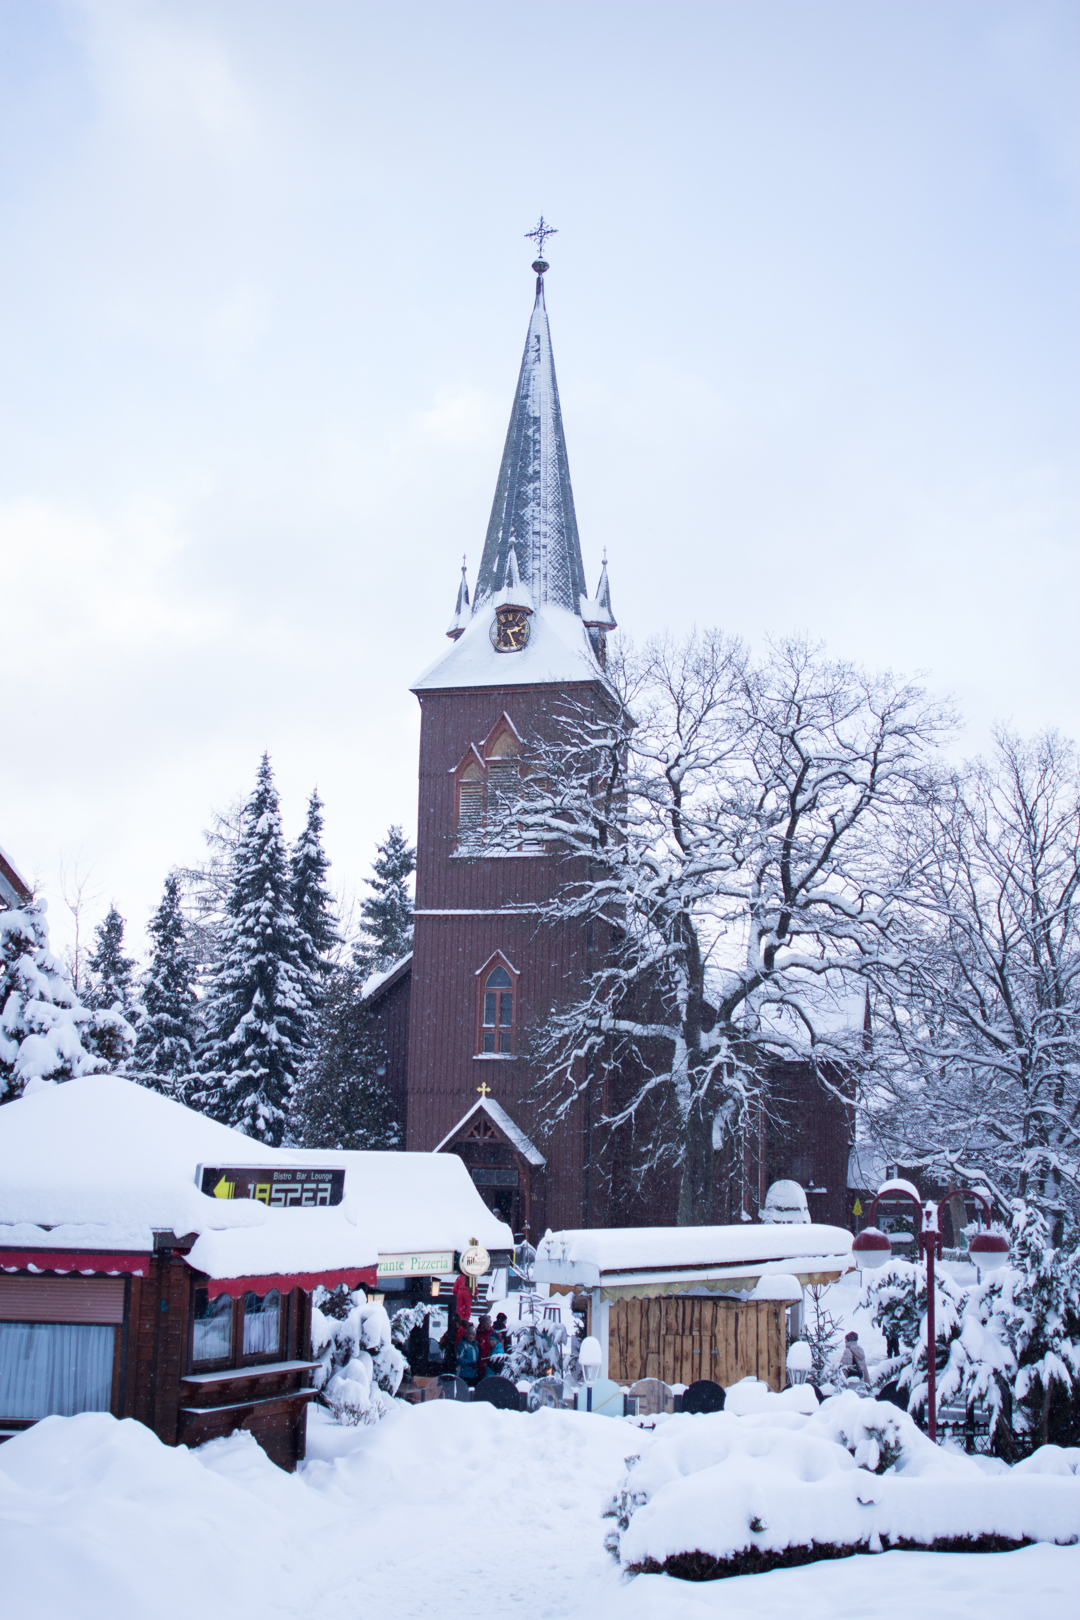 Into The Winter Wonderland: Exploring Harz Mountain